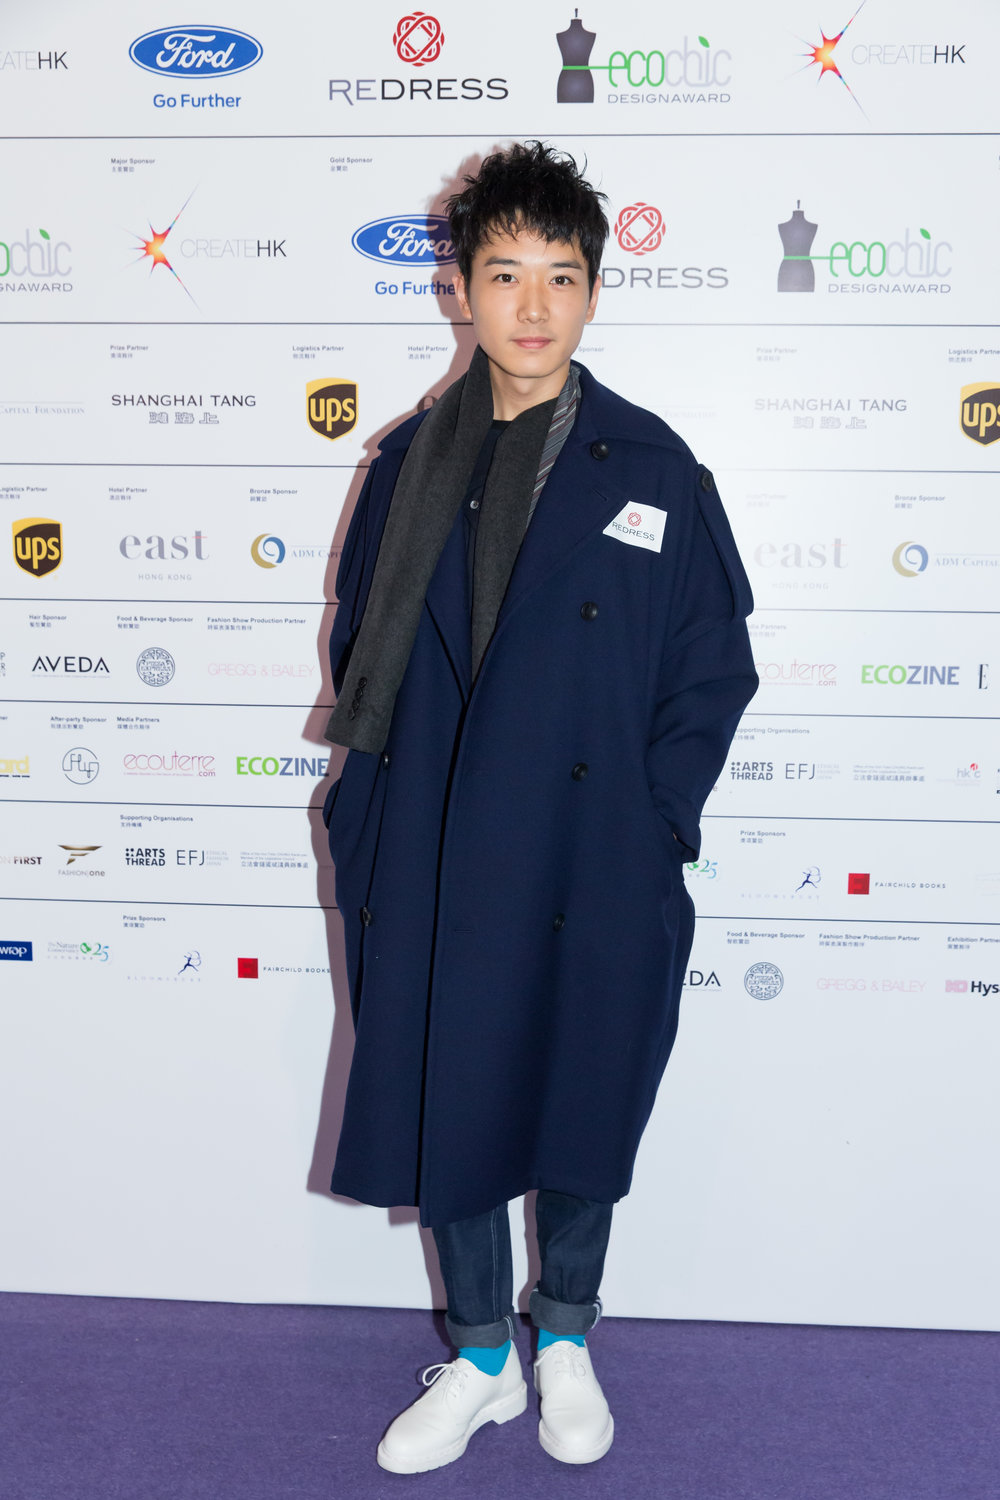 Hong Kong actor BabyJohn Choi attends EcoChic Design Award 2015/16 Grand Final